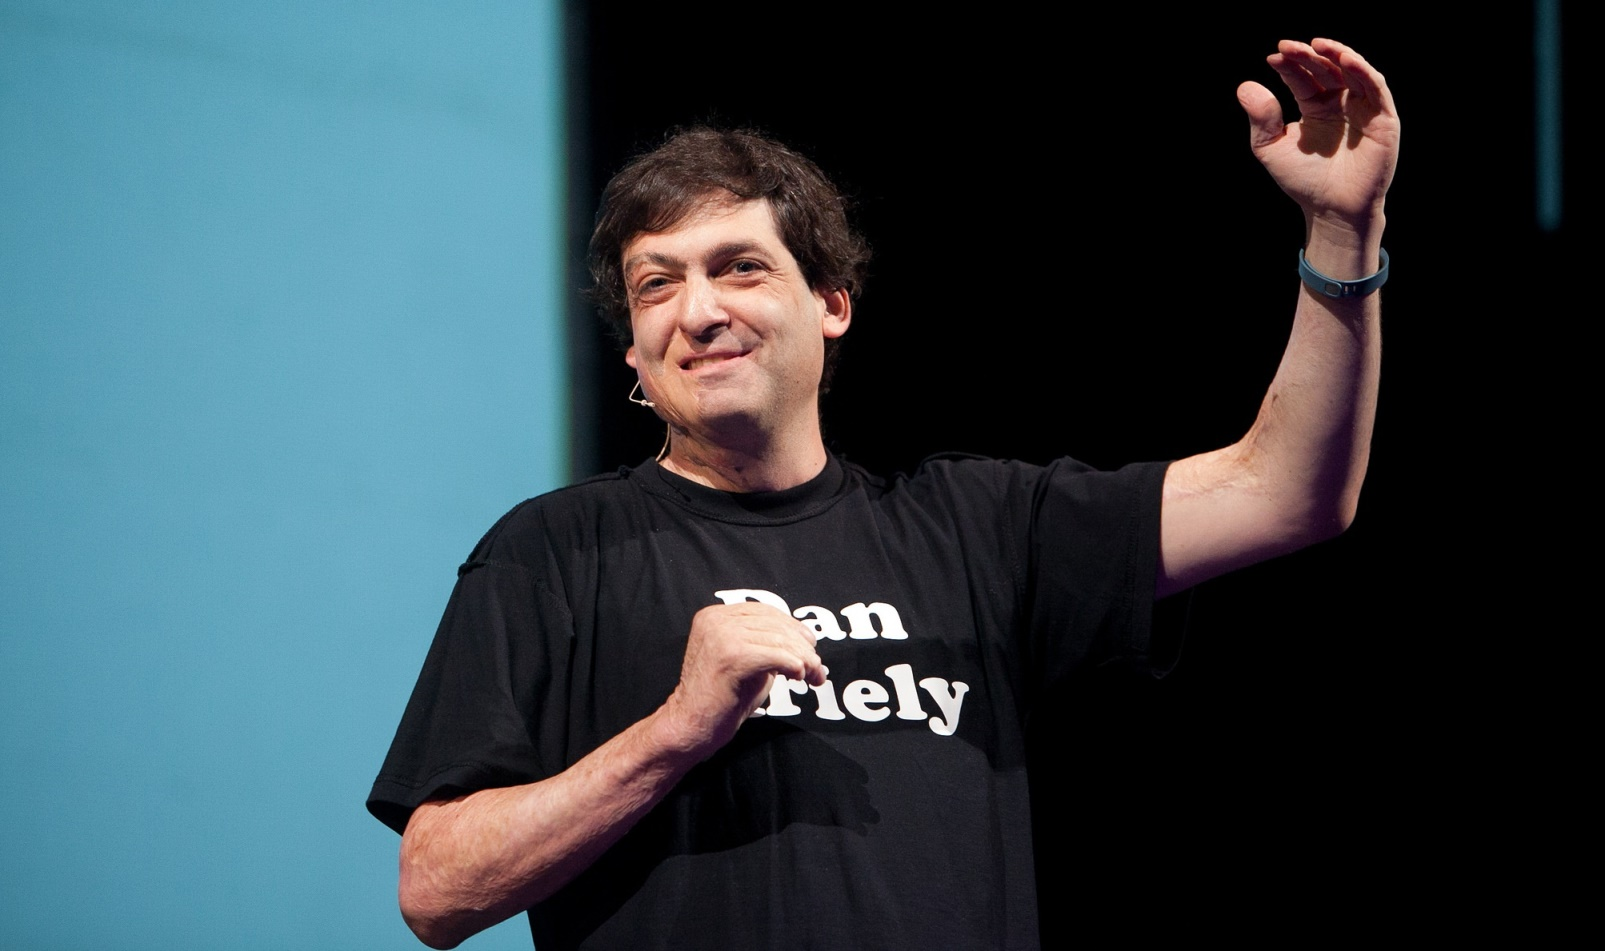 Dan Ariely of the Center for Advanced Hindsight. Photo courtesy